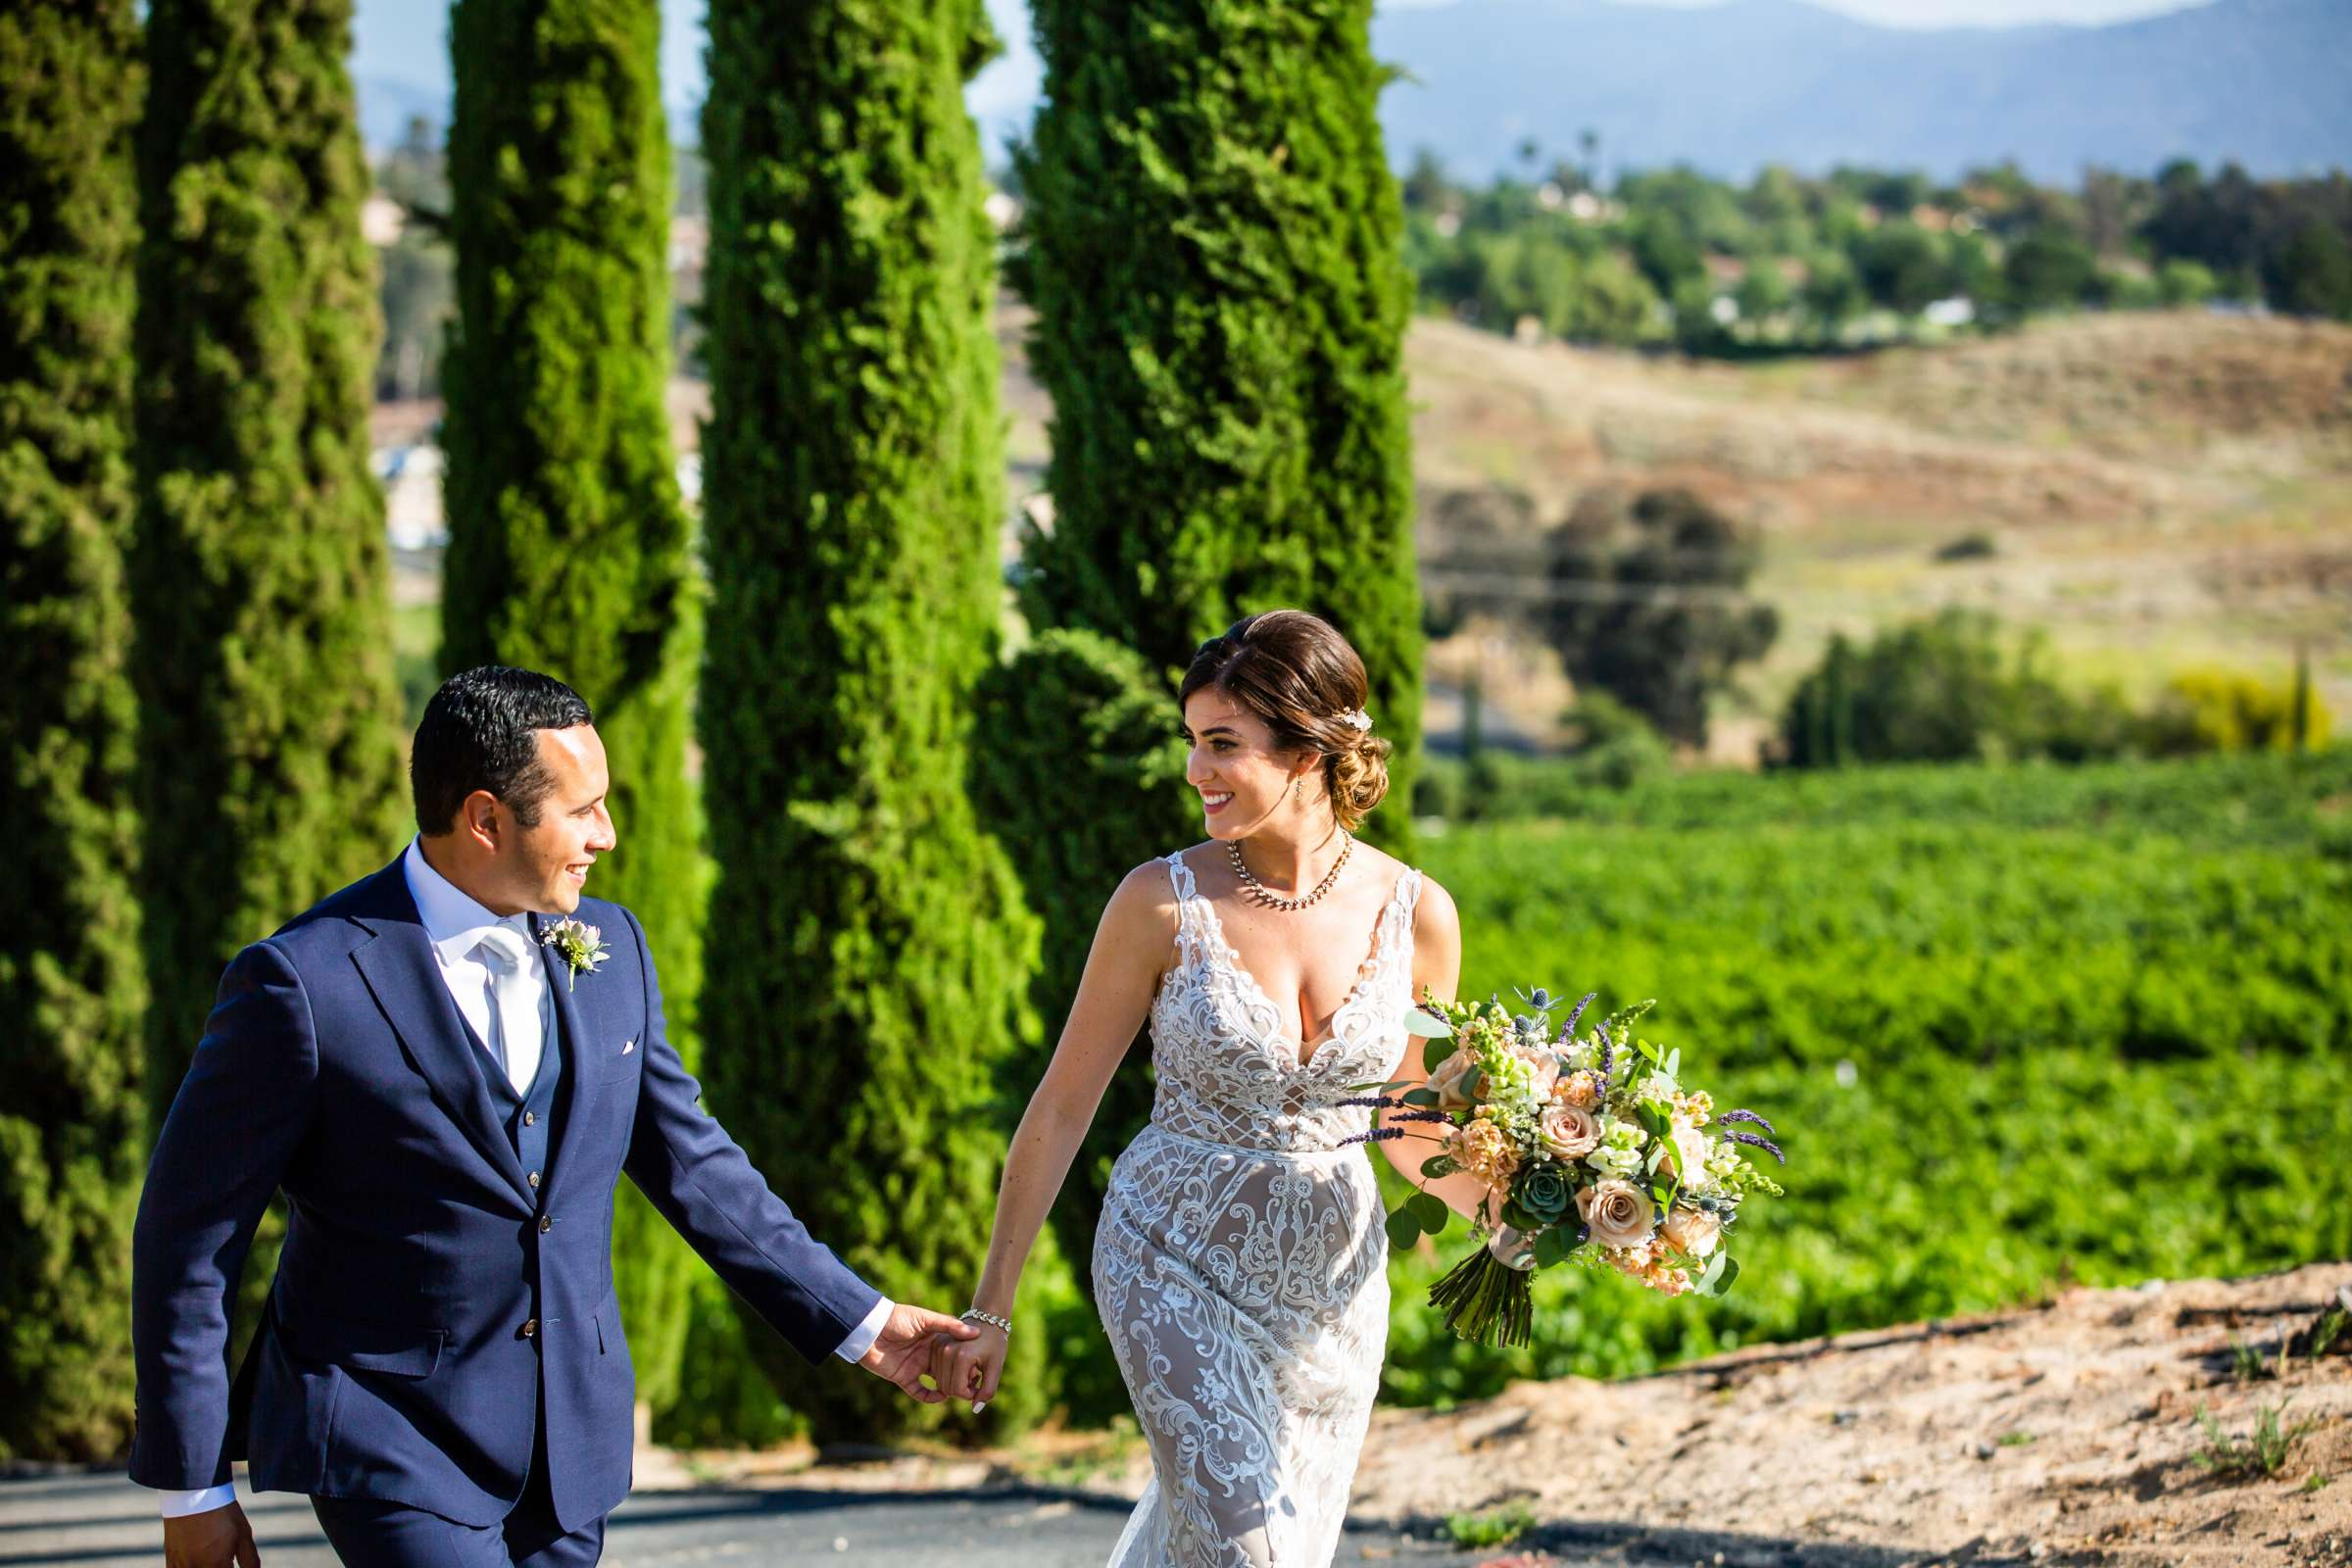 Callaway Vineyards & Winery Wedding coordinated by Michelle Garibay Events, Chelsea and Luis carlos Wedding Photo #7 by True Photography